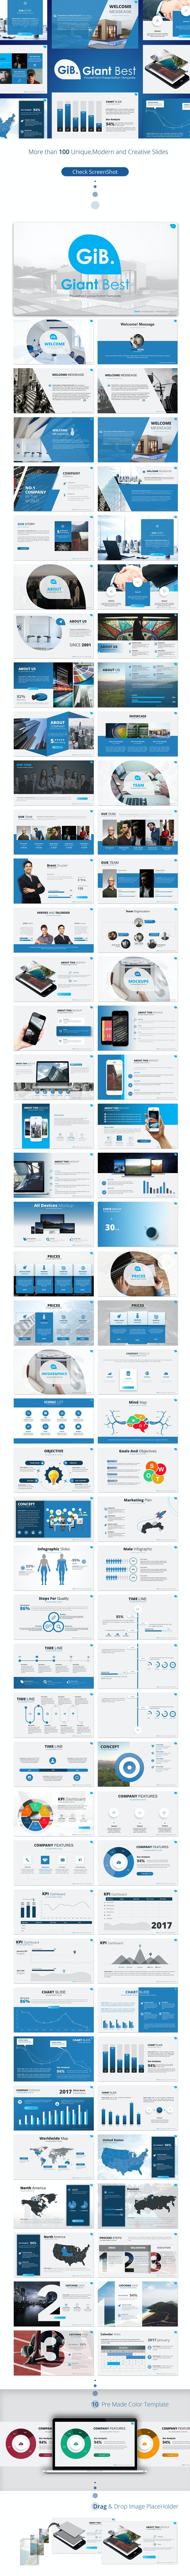 giant best powerpoint presentation template by premast graphicriver